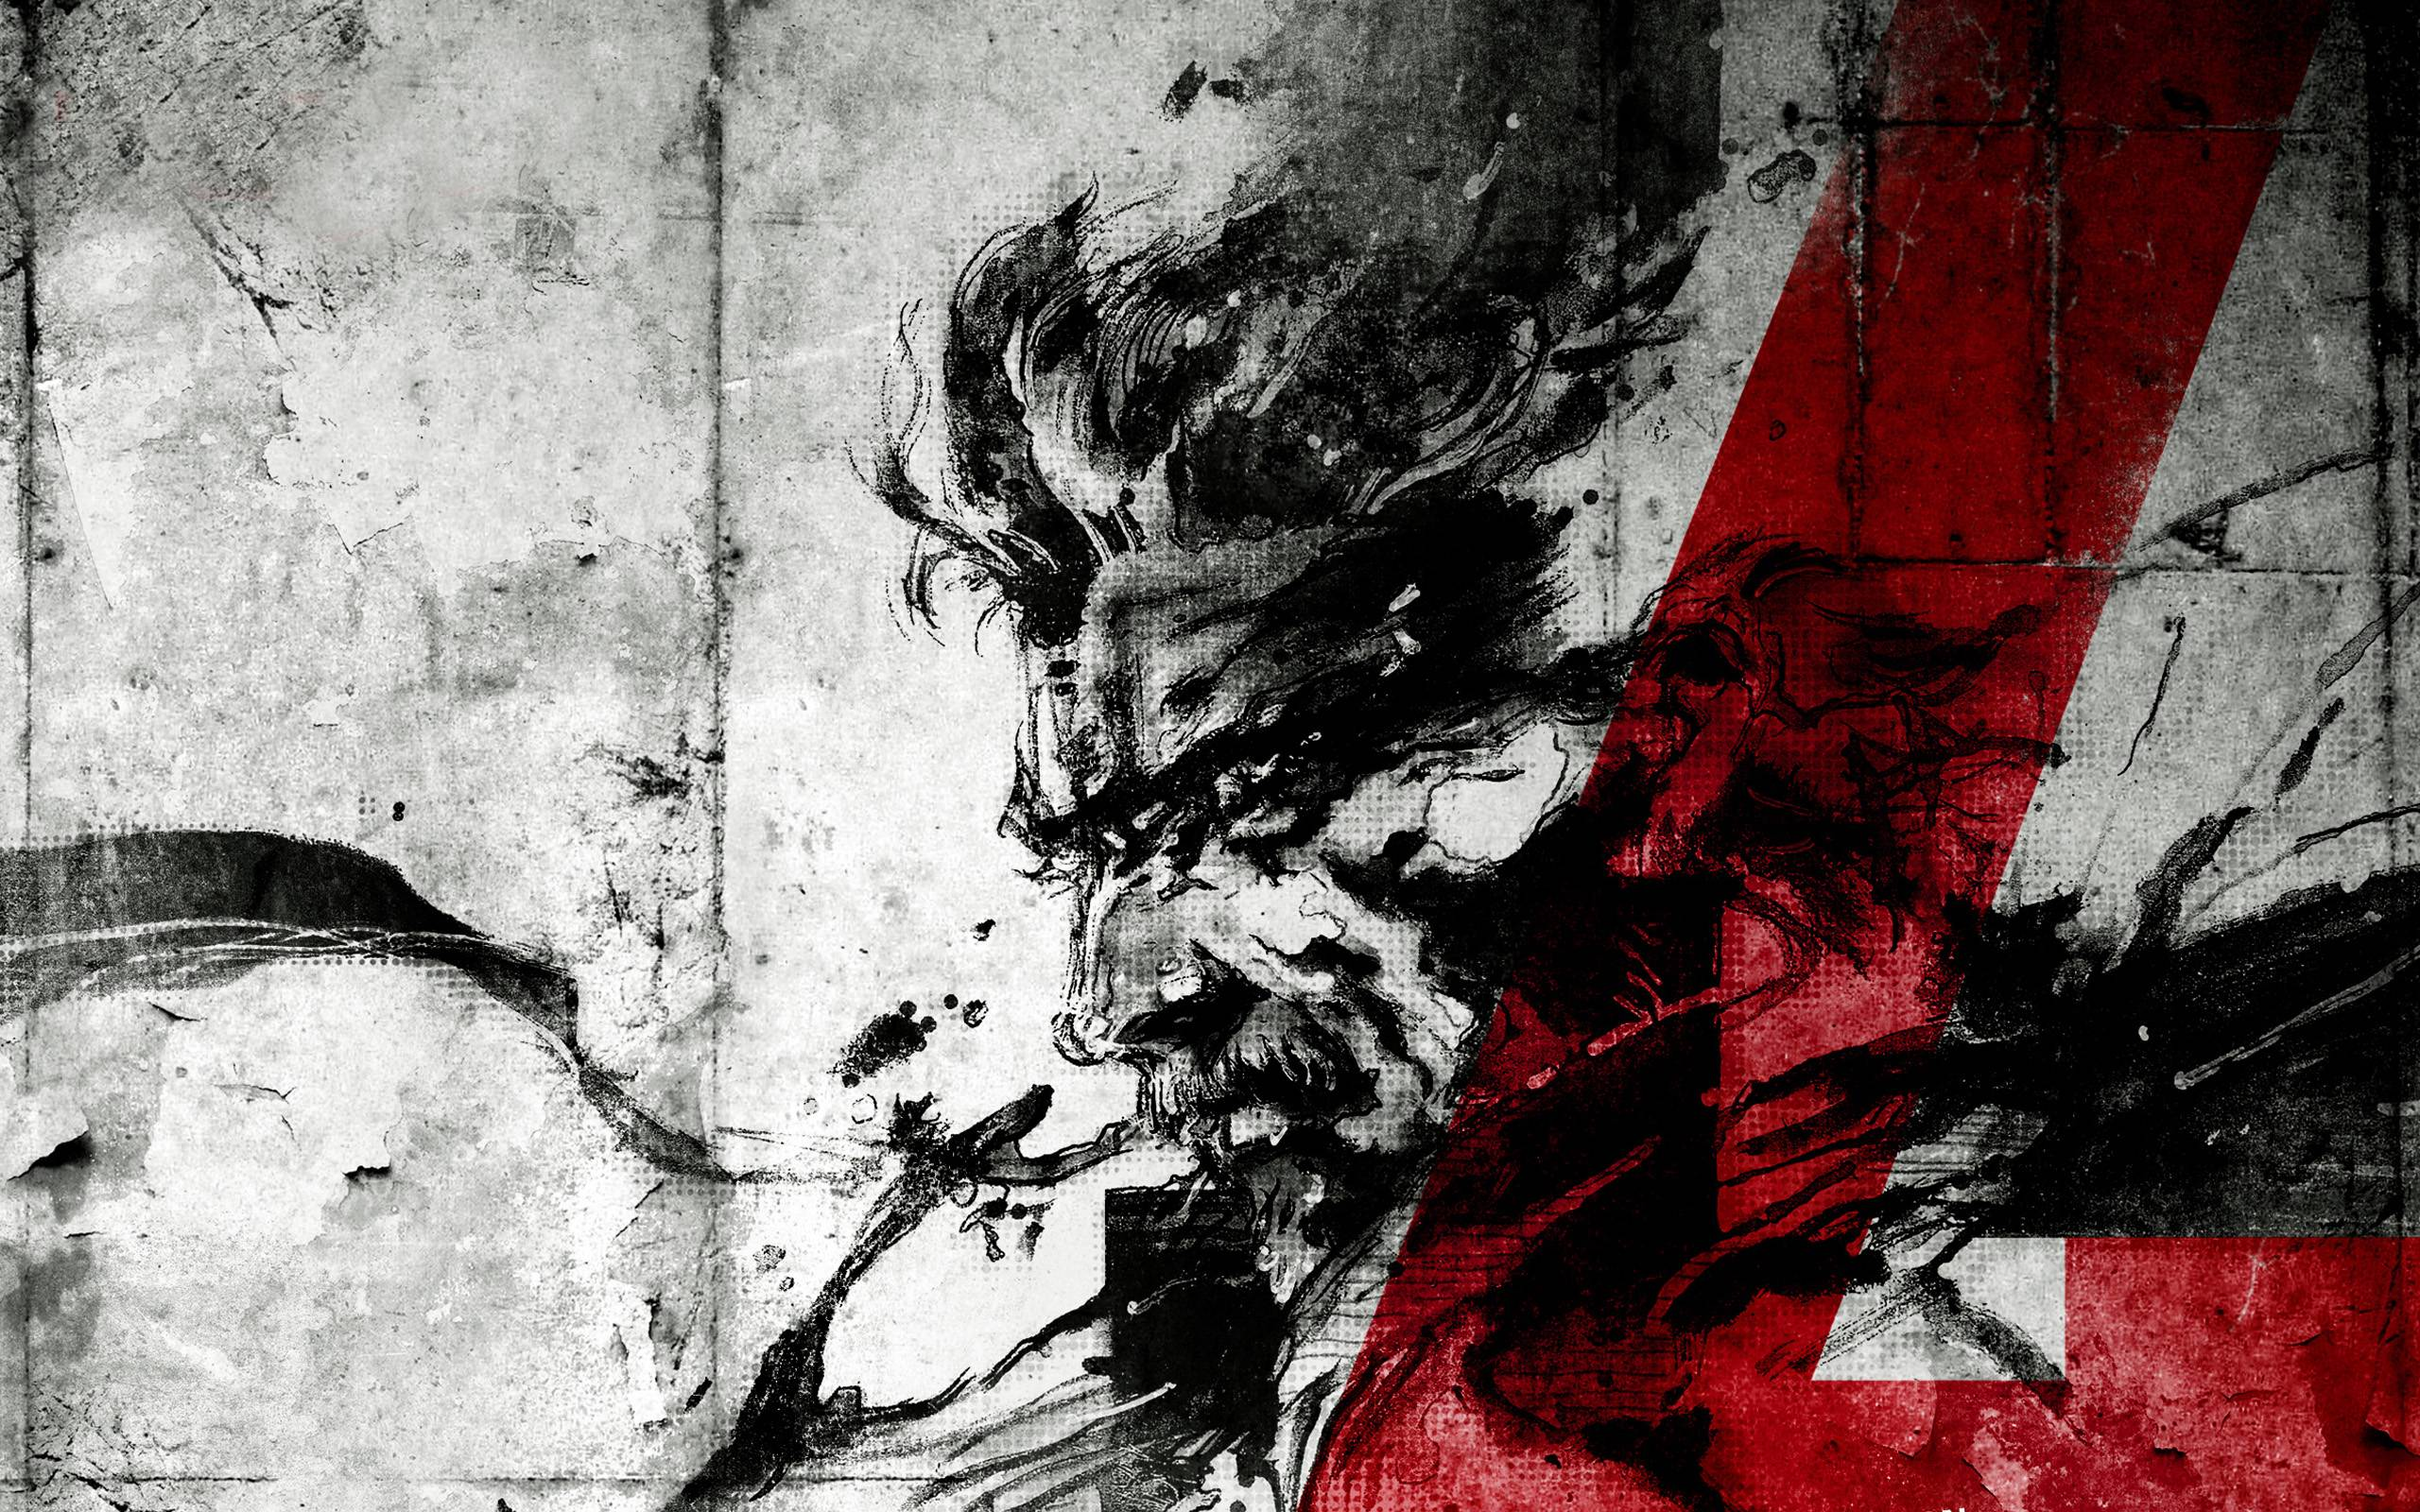 Metal Gear Solid HD Wallpaper